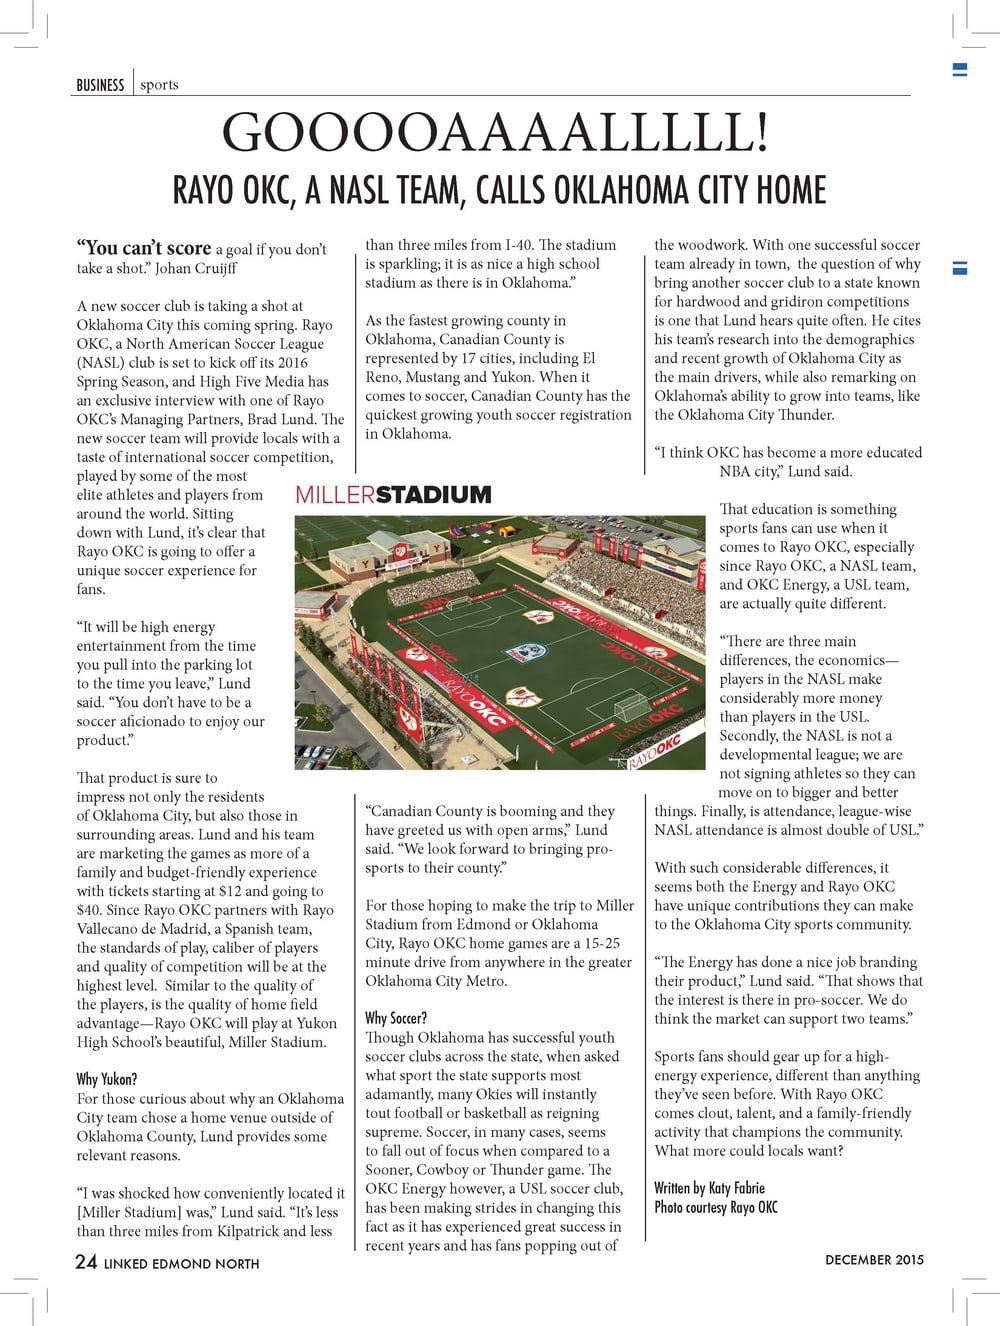 "DECEMBER 2015  BUSINESS sports  ""You can't score a goal if you don't  take a shot."" Johan Cruijff  A new soccer club is taking a shot at  Oklahoma City this coming spring. Rayo  OKC, a North American Soccer League  (NASL) club is set to kick off its 2016  Spring Season, and High Five Media has  an exclusive interview with one of Rayo  OKC's Managing Partners, Brad Lund. The  new soccer team will provide locals with a  taste of international soccer competition,  played by some of the most  elite athletes and players from  around the world. Sitting  down with Lund, it's clear that  Rayo OKC is going to offer a  unique soccer experience for  fans.  ""It will be high energy  entertainment from the time  you pull into the parking lot  to the time you leave,"" Lund  said. ""You don't have to be a  soccer aficionado to enjoy our  product.""  That product is sure to  impress not only the residents  of Oklahoma City, but also those in  surrounding areas. Lund and his team  are marketing the games as more of a  family and budget-friendly experience  with tickets starting at $12 and going to  $40. Since Rayo OKC partners with Rayo  Vallecano de Madrid, a Spanish team,  the standards of play, caliber of players  and quality of competition will be at the  highest level. Similar to the quality of  the players, is the quality of home field  advantage—Rayo OKC will play at Yukon  High School's beautiful, Miller Stadium.  Why Yukon?  For those curious about why an Oklahoma  City team chose a home venue outside of  Oklahoma County, Lund provides some  relevant reasons.  ""I was shocked how conveniently located it  [Miller Stadium] was,"" Lund said. ""It's less  than three miles from Kilpatrick and less  than three miles from I-40. The stadium  is sparkling; it is as nice a high school  stadium as there is in Oklahoma.""  As the fastest growing county in  Oklahoma, Canadian County is  represented by 17 cities, including El  Reno, Mustang and Yukon. When it  comes to soccer, Canadian County has the  quickest growing youth soccer registration  in Oklahoma.  ""Canadian County is booming and they  have greeted us with open arms,"" Lund  said. ""We look forward to bringing prosports  to their county.""  For those hoping to make the trip to Miller  Stadium from Edmond or Oklahoma  City, Rayo OKC home games are a 15-25  minute drive from anywhere in the greater  Oklahoma City Metro.  Why Soccer?  Though Oklahoma has successful youth  soccer clubs across the state, when asked  what sport the state supports most  adamantly, many Okies will instantly  tout football or basketball as reigning  supreme. Soccer, in many cases, seems  to fall out of focus when compared to a  Sooner, Cowboy or Thunder game. The  OKC Energy however, a USL soccer club,  has been making strides in changing this  fact as it has experienced great success in  recent years and has fans popping out of  the woodwork. With one successful soccer  team already in town, the question of why  bring another soccer club to a state known  for hardwood and gridiron competitions  is one that Lund hears quite often. He cites  his team's research into the demographics  and recent growth of Oklahoma City as  the main drivers, while also remarking on  Oklahoma's ability to grow into teams, like  the Oklahoma City Thunder.  ""I think OKC has become a more educated  NBA city,"" Lund said.  That education is something  sports fans can use when it  comes to Rayo OKC, especially  since Rayo OKC, a NASL team,  and OKC Energy, a USL team,  are actually quite different.  ""There are three main  differences, the economics—  players in the NASL make  considerably more money  than players in the USL.  Secondly, the NASL is not a  developmental league; we are  not signing athletes so they can  move on to bigger and better  things. Finally, is attendance, league-wise  NASL attendance is almost double of USL.""  With such considerable differences, it  seems both the Energy and Rayo OKC  have unique contributions they can make  to the Oklahoma City sports community.  ""The Energy has done a nice job branding  their product,"" Lund said. ""That shows that  the interest is there in pro-soccer. We do  think the market can support two teams.""  Sports fans should gear up for a highenergy  experience, different than anything  they've seen before. With Rayo OKC  comes clout, talent, and a family-friendly  activity that champions the community.  What more could locals want?  Written by Katy Fabrie  Photo courtesy Rayo OKC"